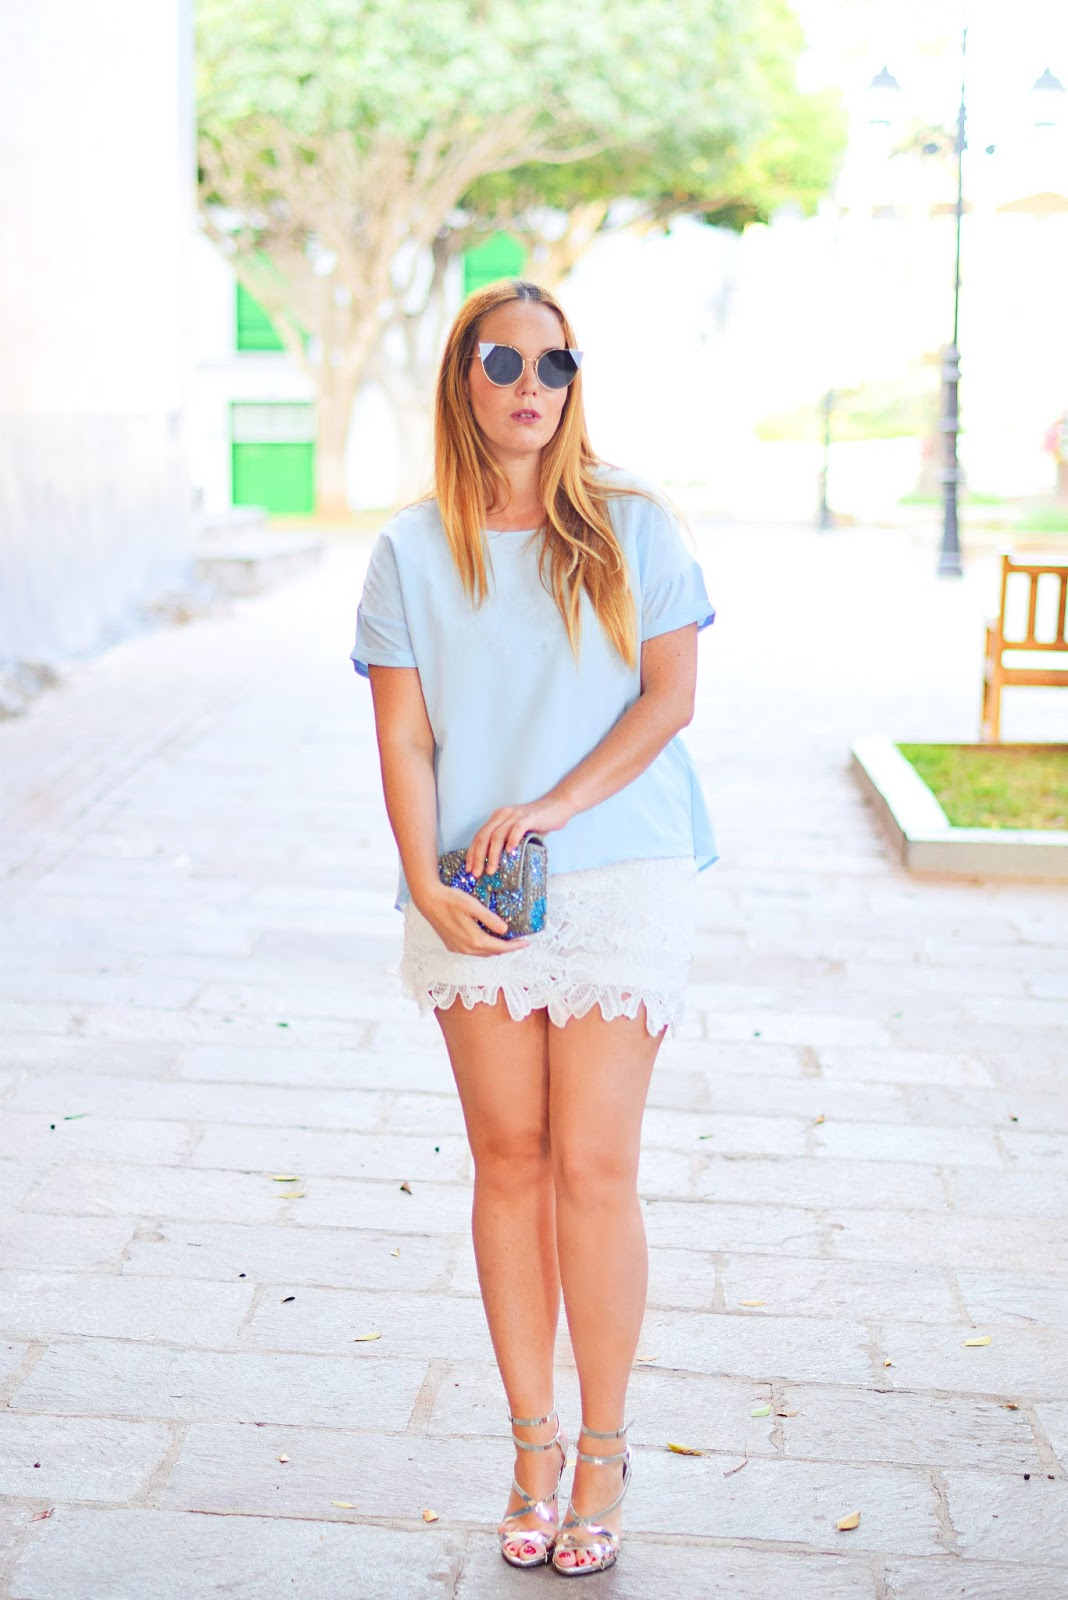 NERY HDEZ, CNDIRECT, Fendi sunglasses, opticalh, amiclubwear sandals, ottaviani bijoux